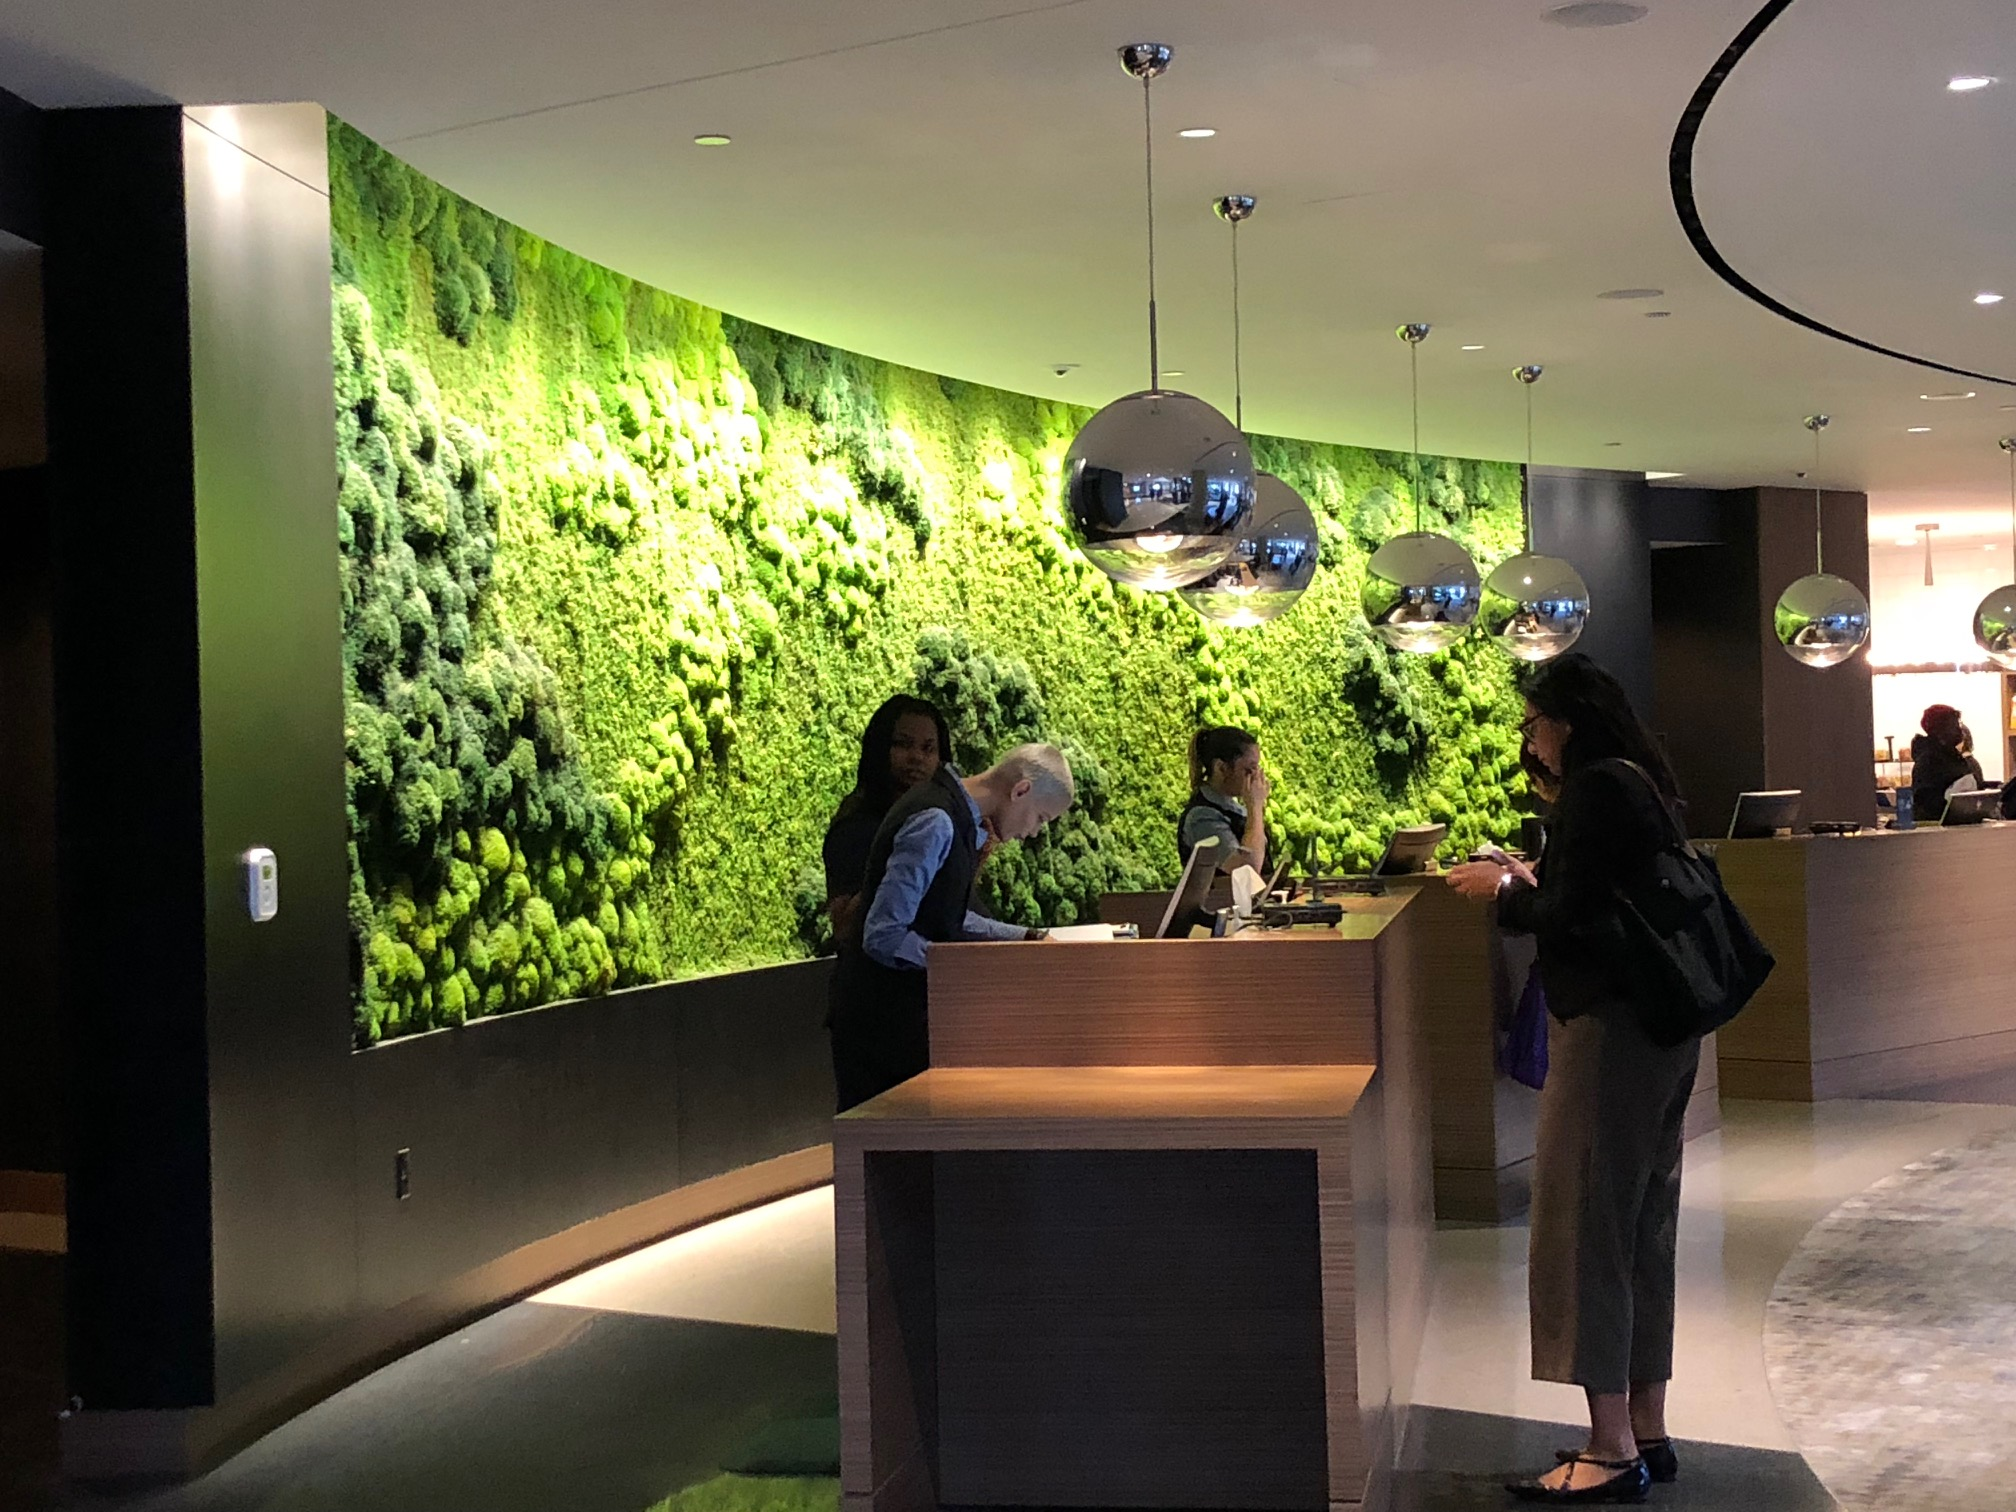 The Moss Wall at Hilton front desk